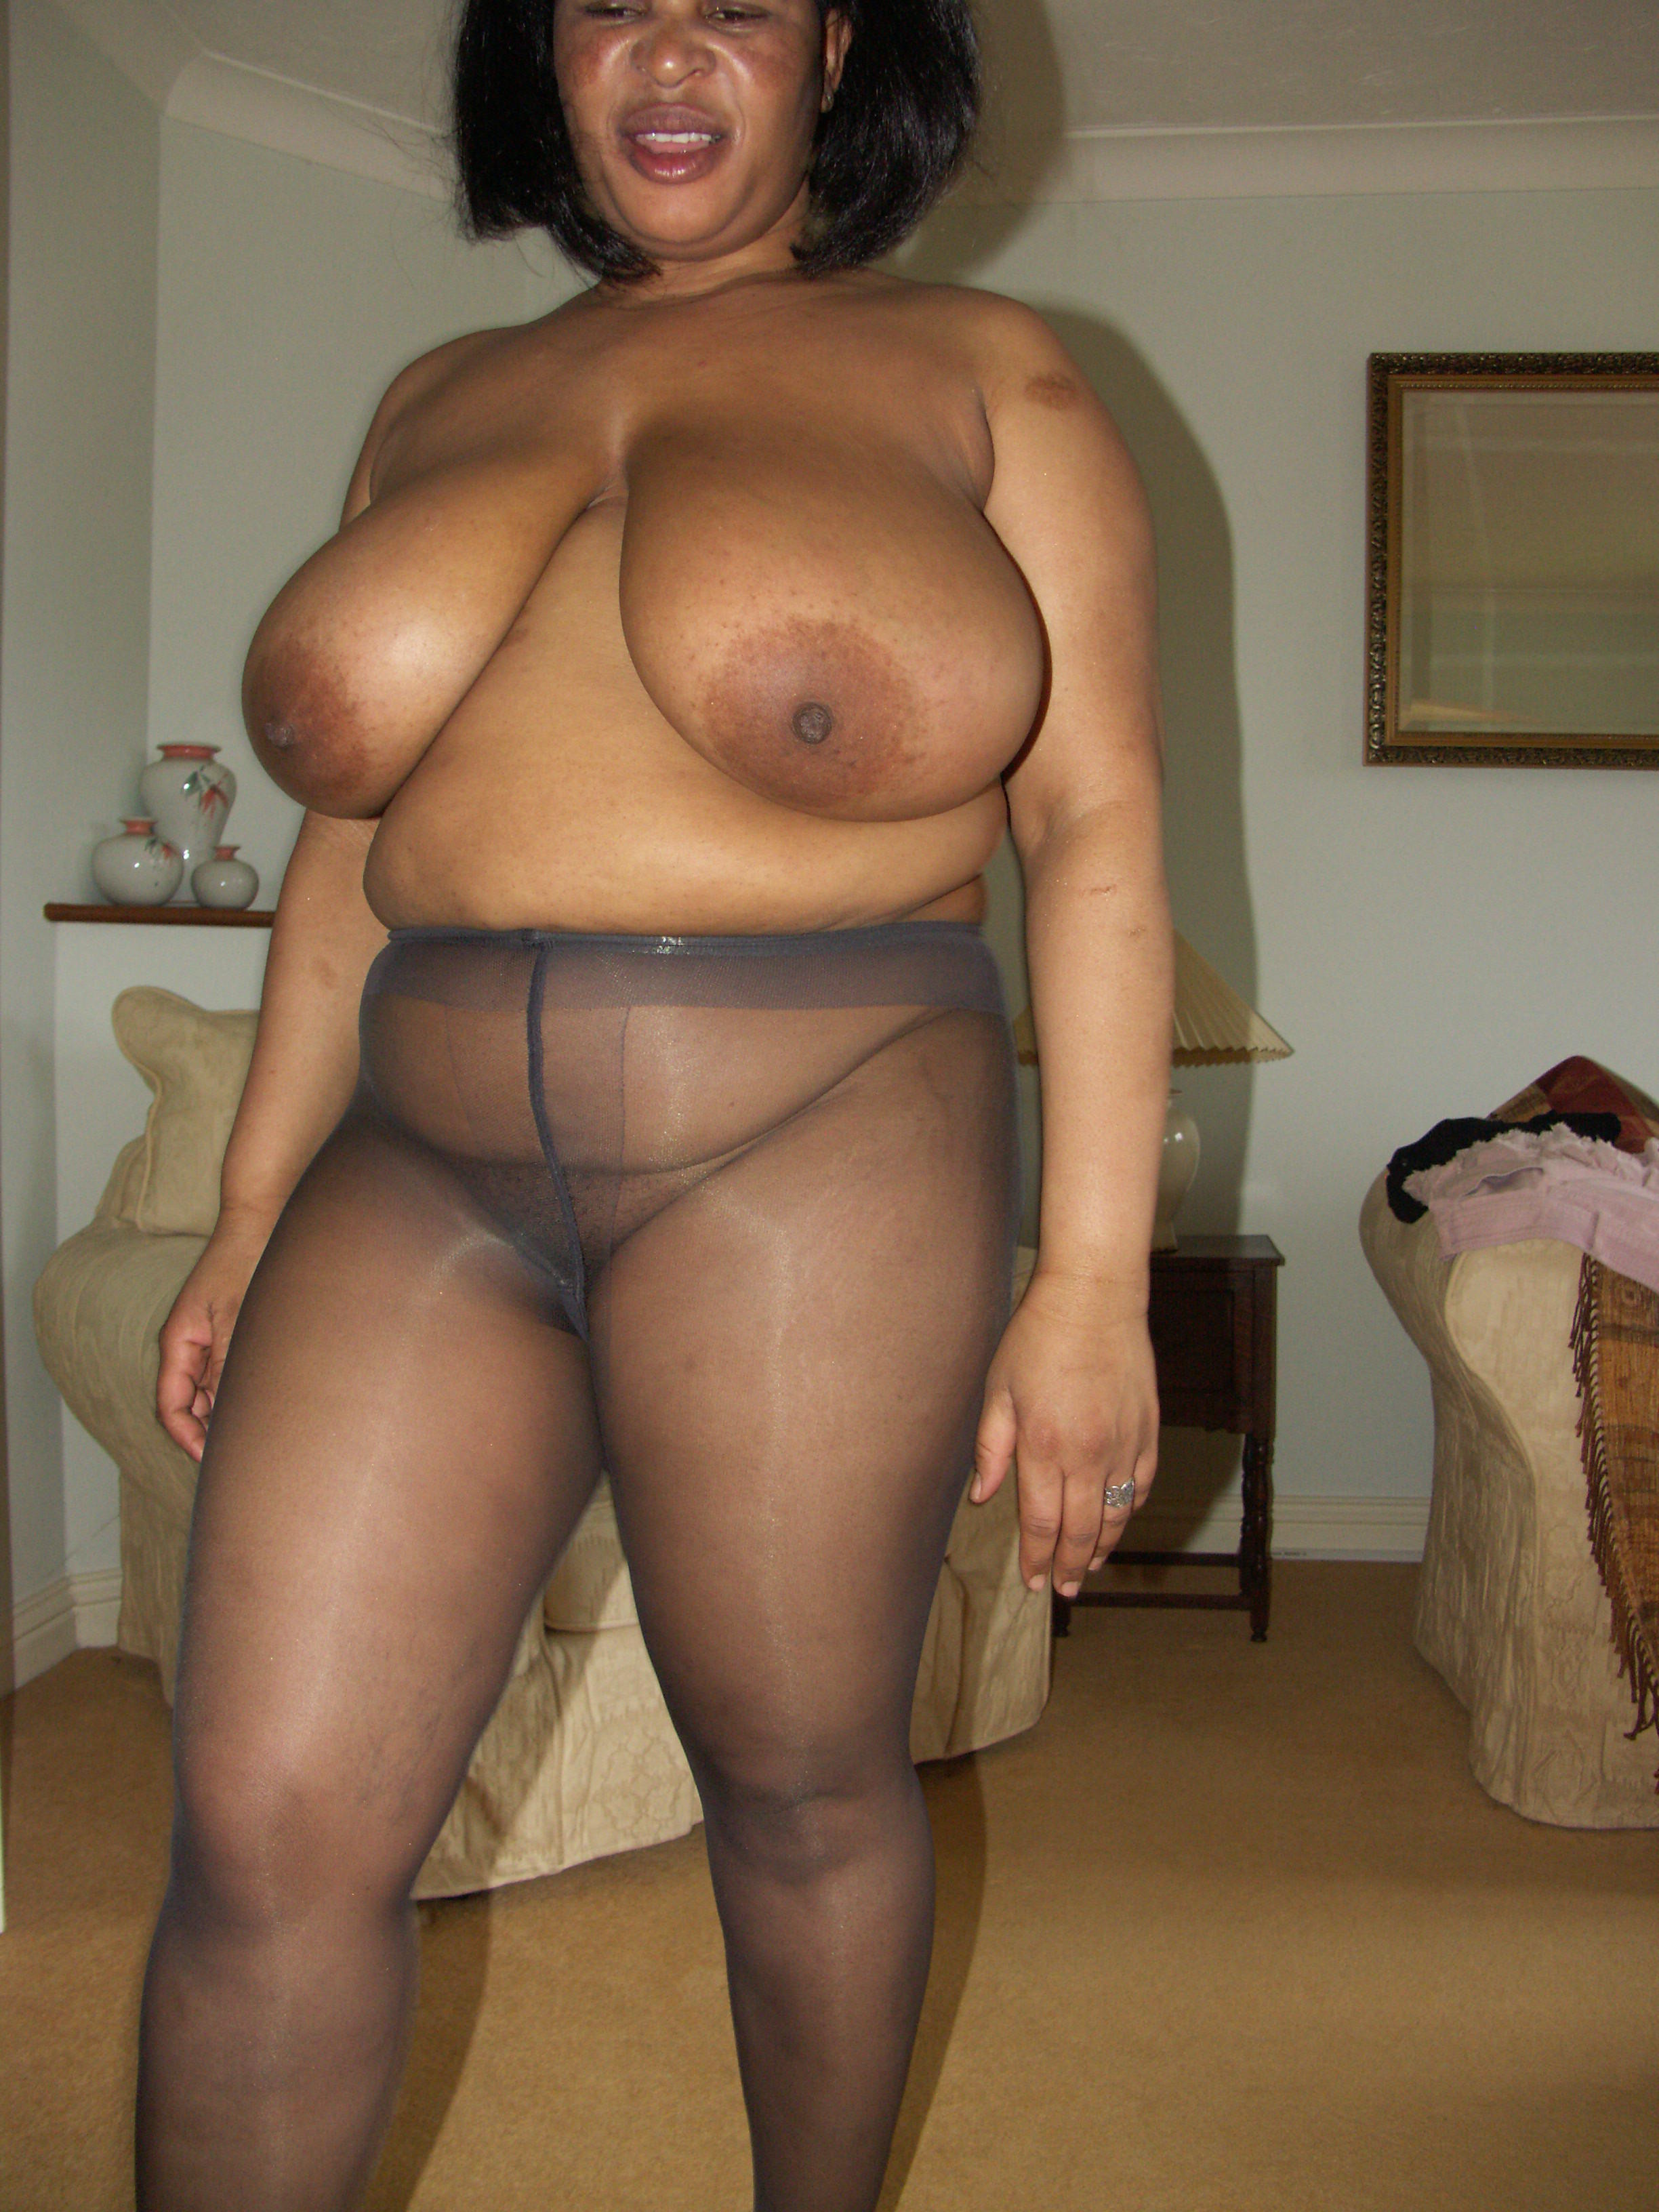 Suggest shaved south african pussy are not right